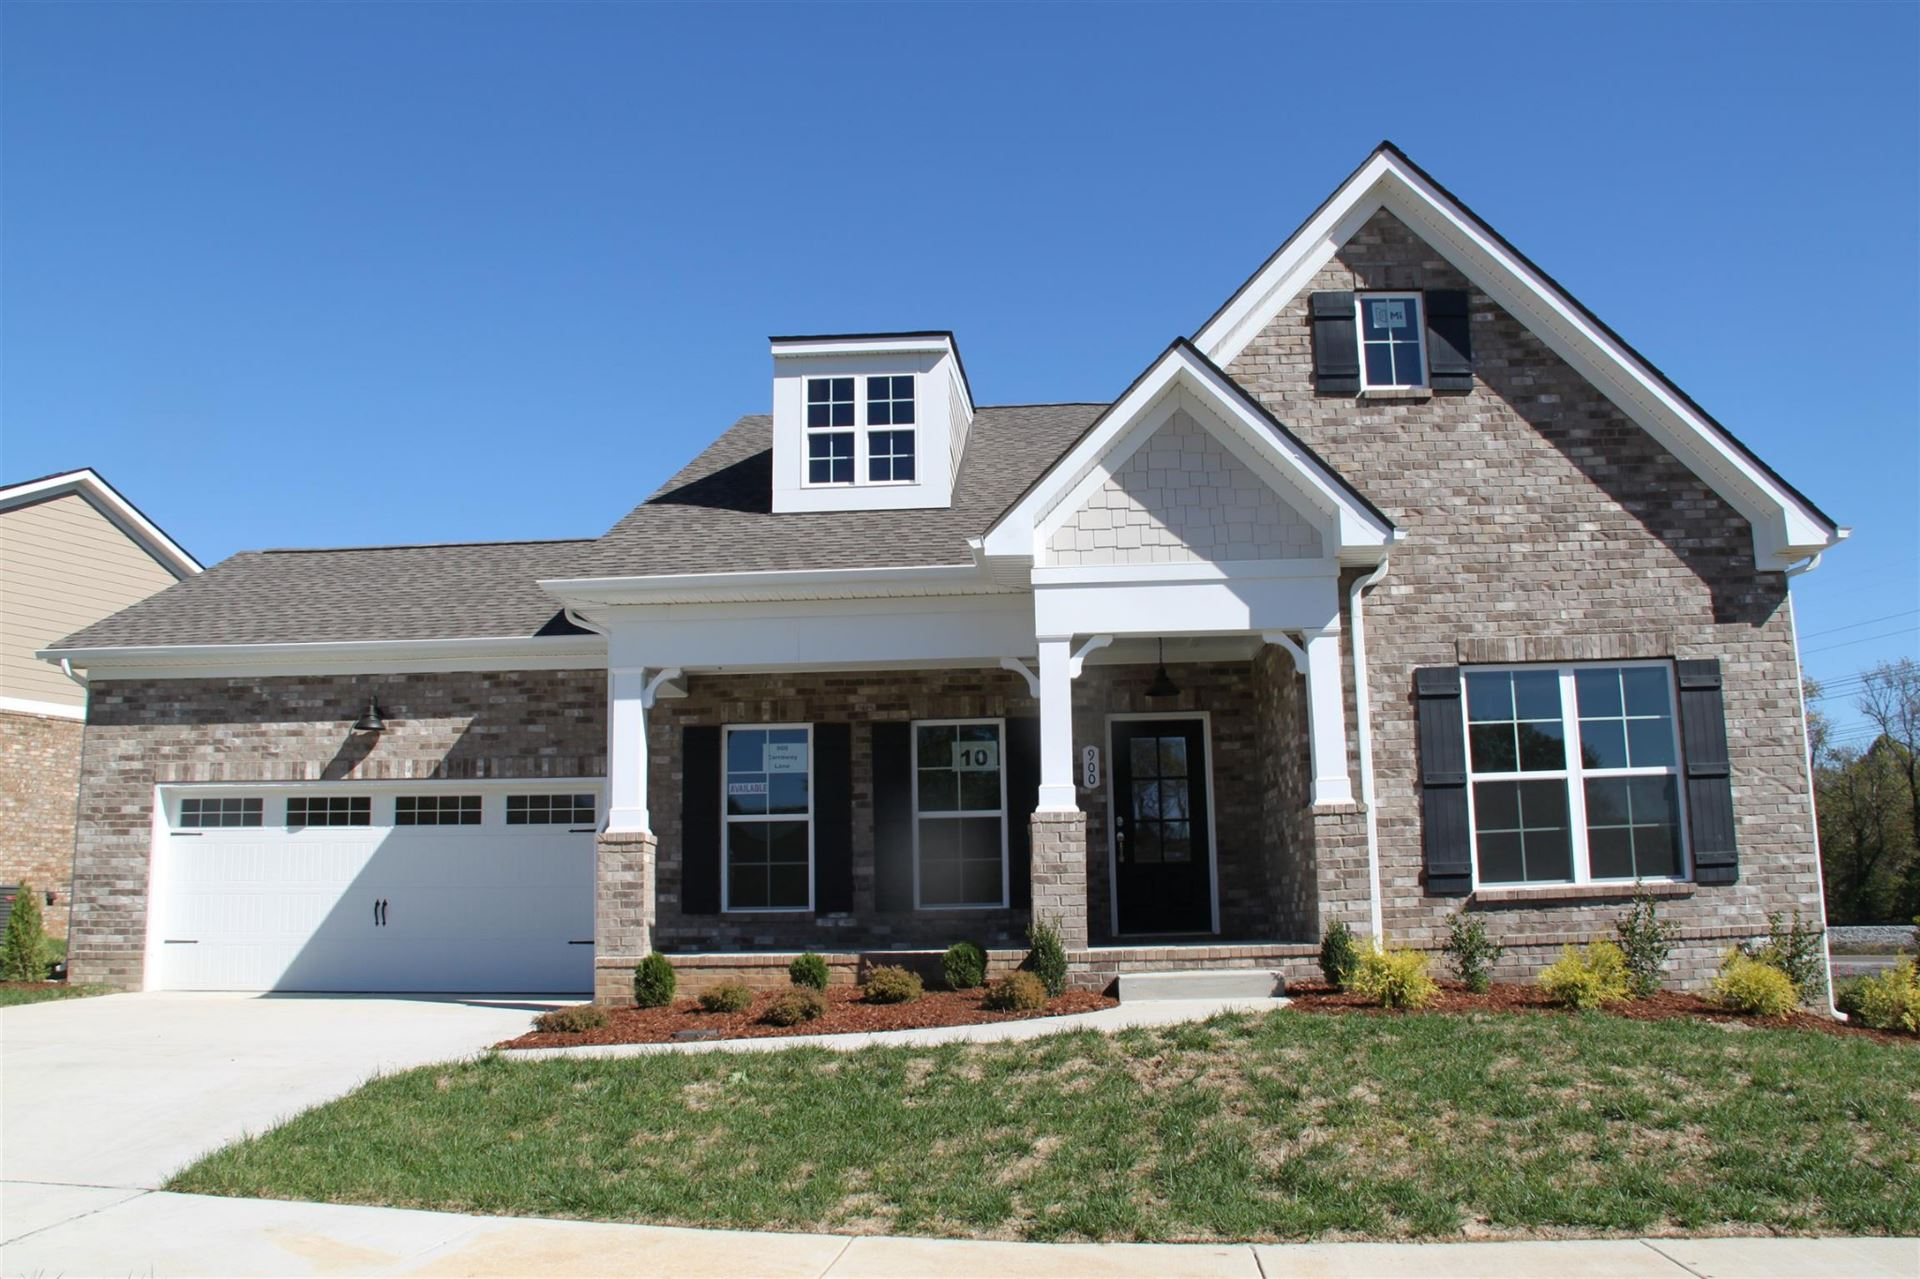 900 Carraway Ln, Spring Hill, TN 37174 - MLS#: 2151532